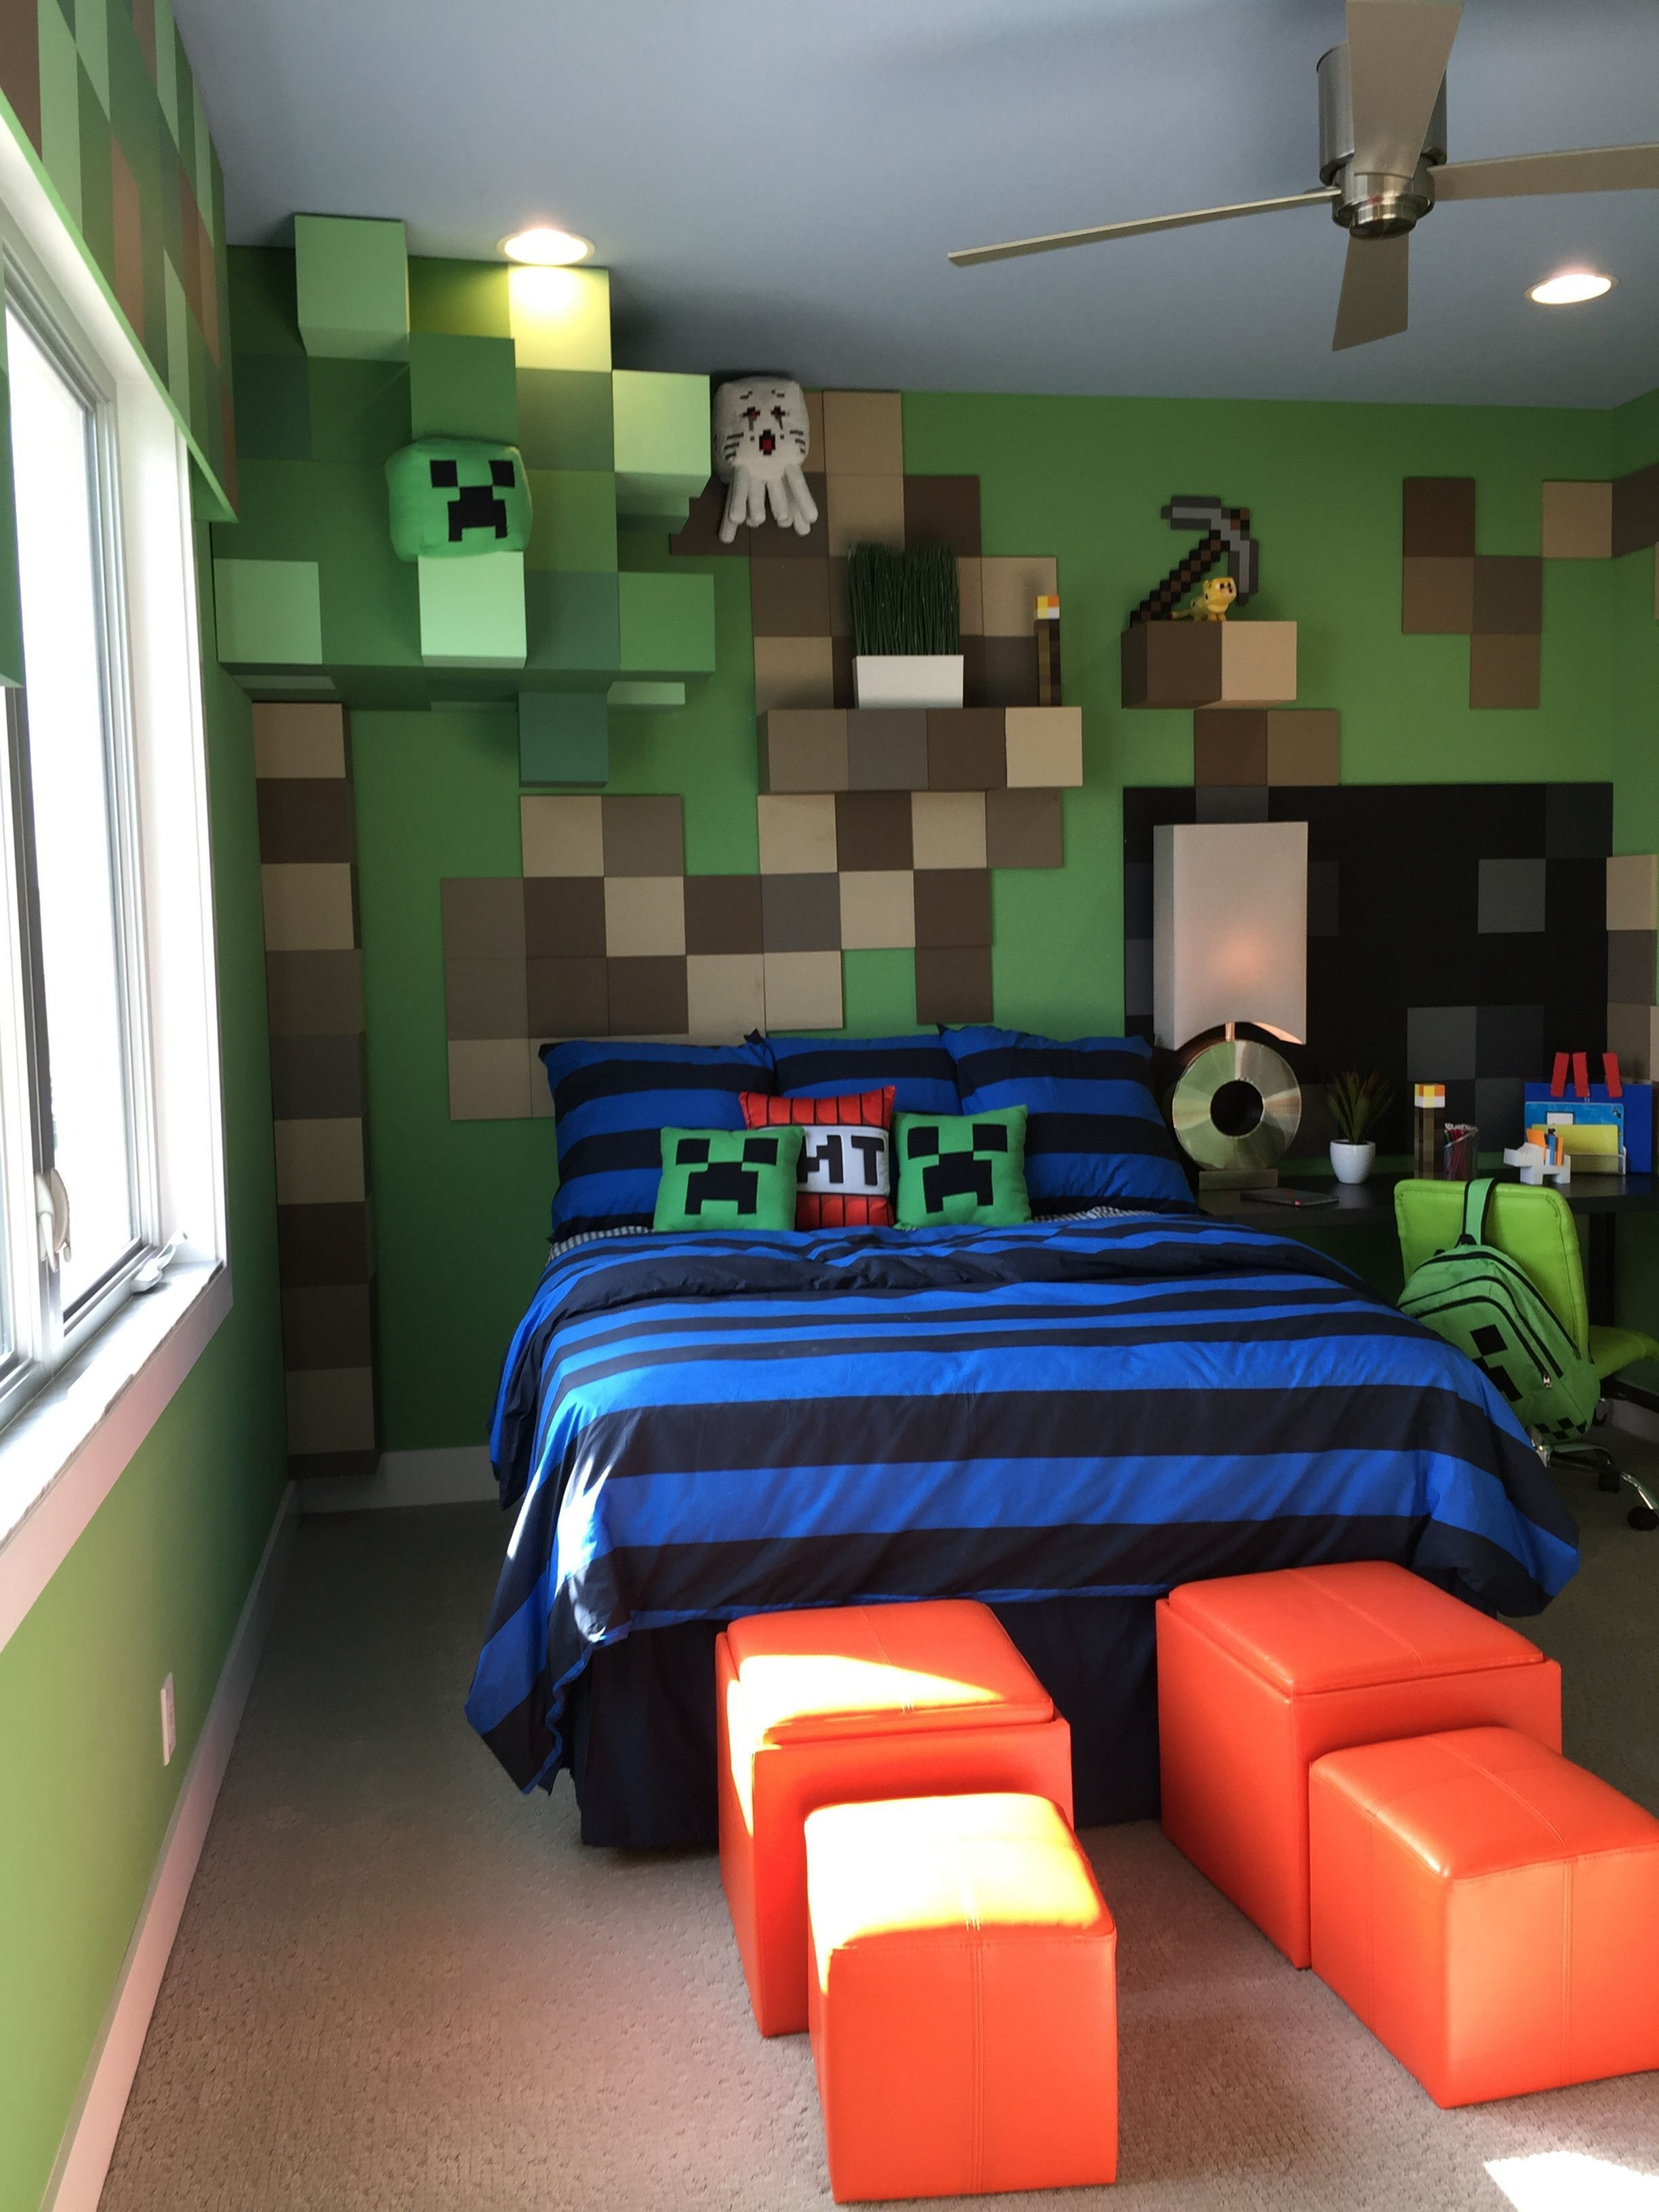 Minecraft decorations room decor crafts party boys also decorative bedcover sheets bedroom design theme aidens rh pinterest